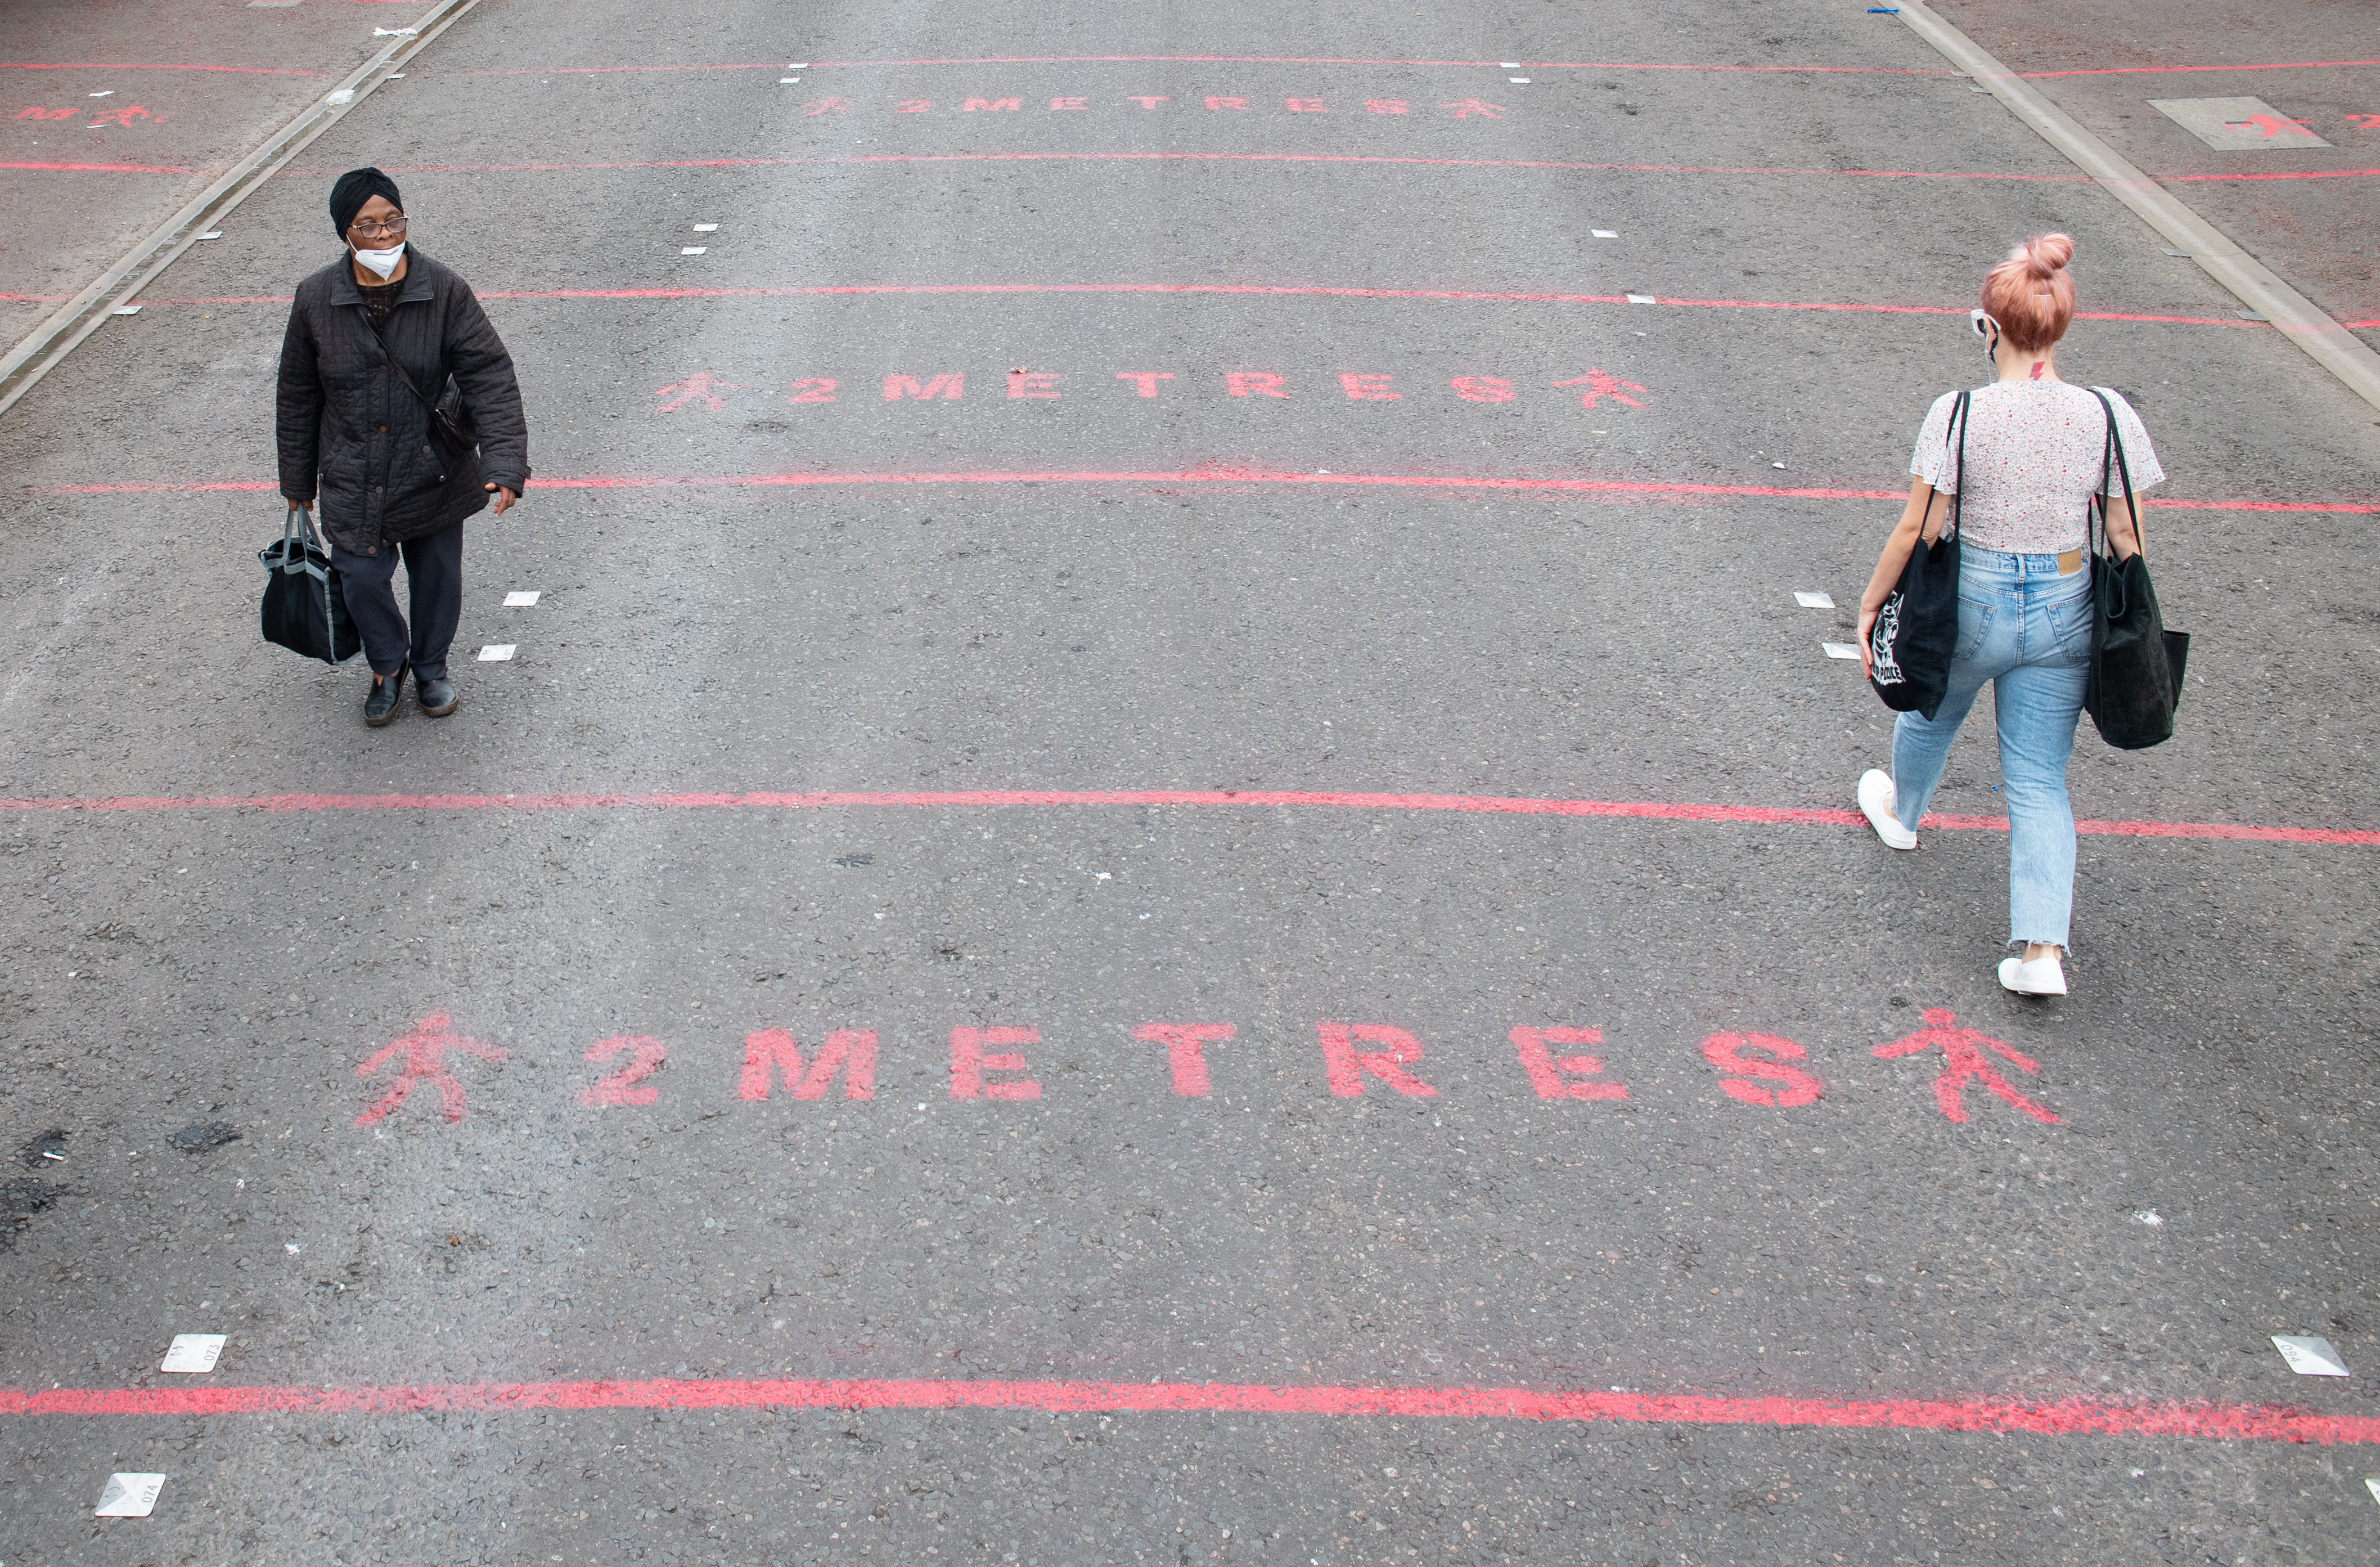 """People walk over two metre social distancing markings at Ridley Road street market in east London, as the government considers relaxing official guidelines on social distancing to a shorter distance of one metre. Health Secretary Matt Hancock, pressed to reduce social distancing from two metres to one metre, has told the Commons: """"It's the sort of thing of course we want to lift and we need to do that in a way that is careful and safe."""